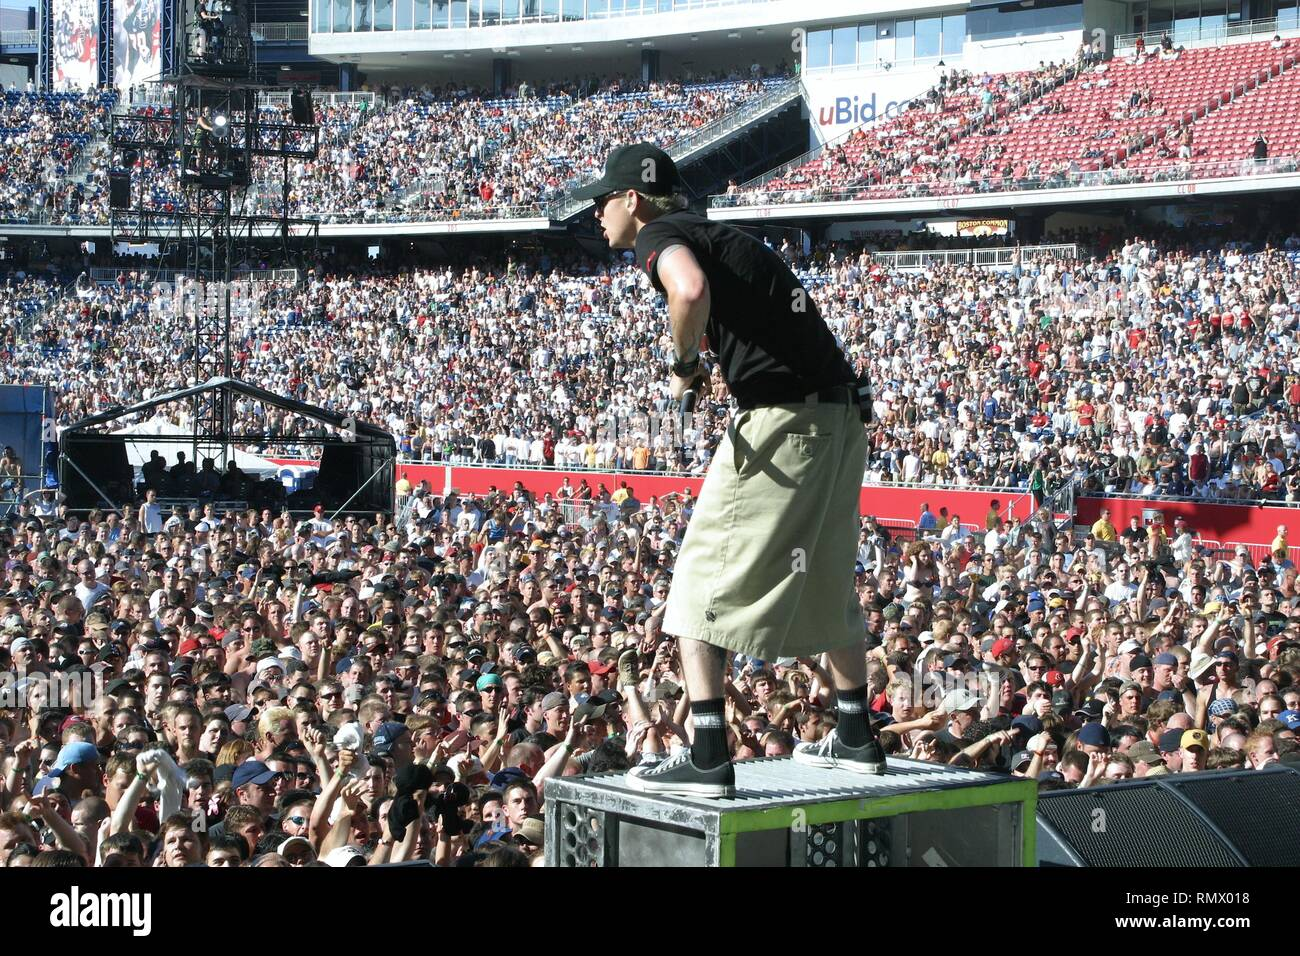 linkin park live in texas full concert hd download